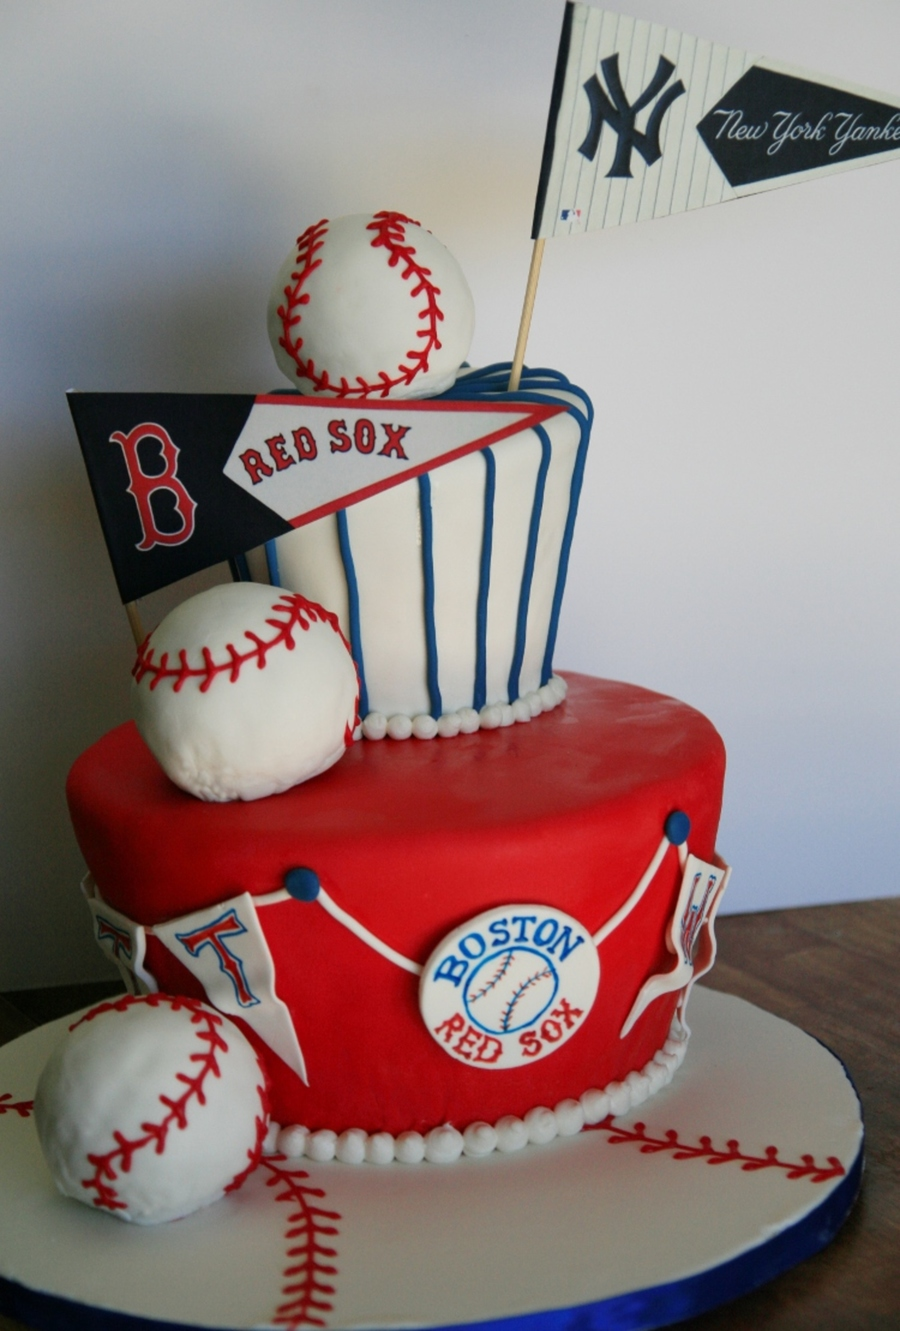 Enjoyable Baseball Birthday Cake Cakecentral Com Funny Birthday Cards Online Fluifree Goldxyz